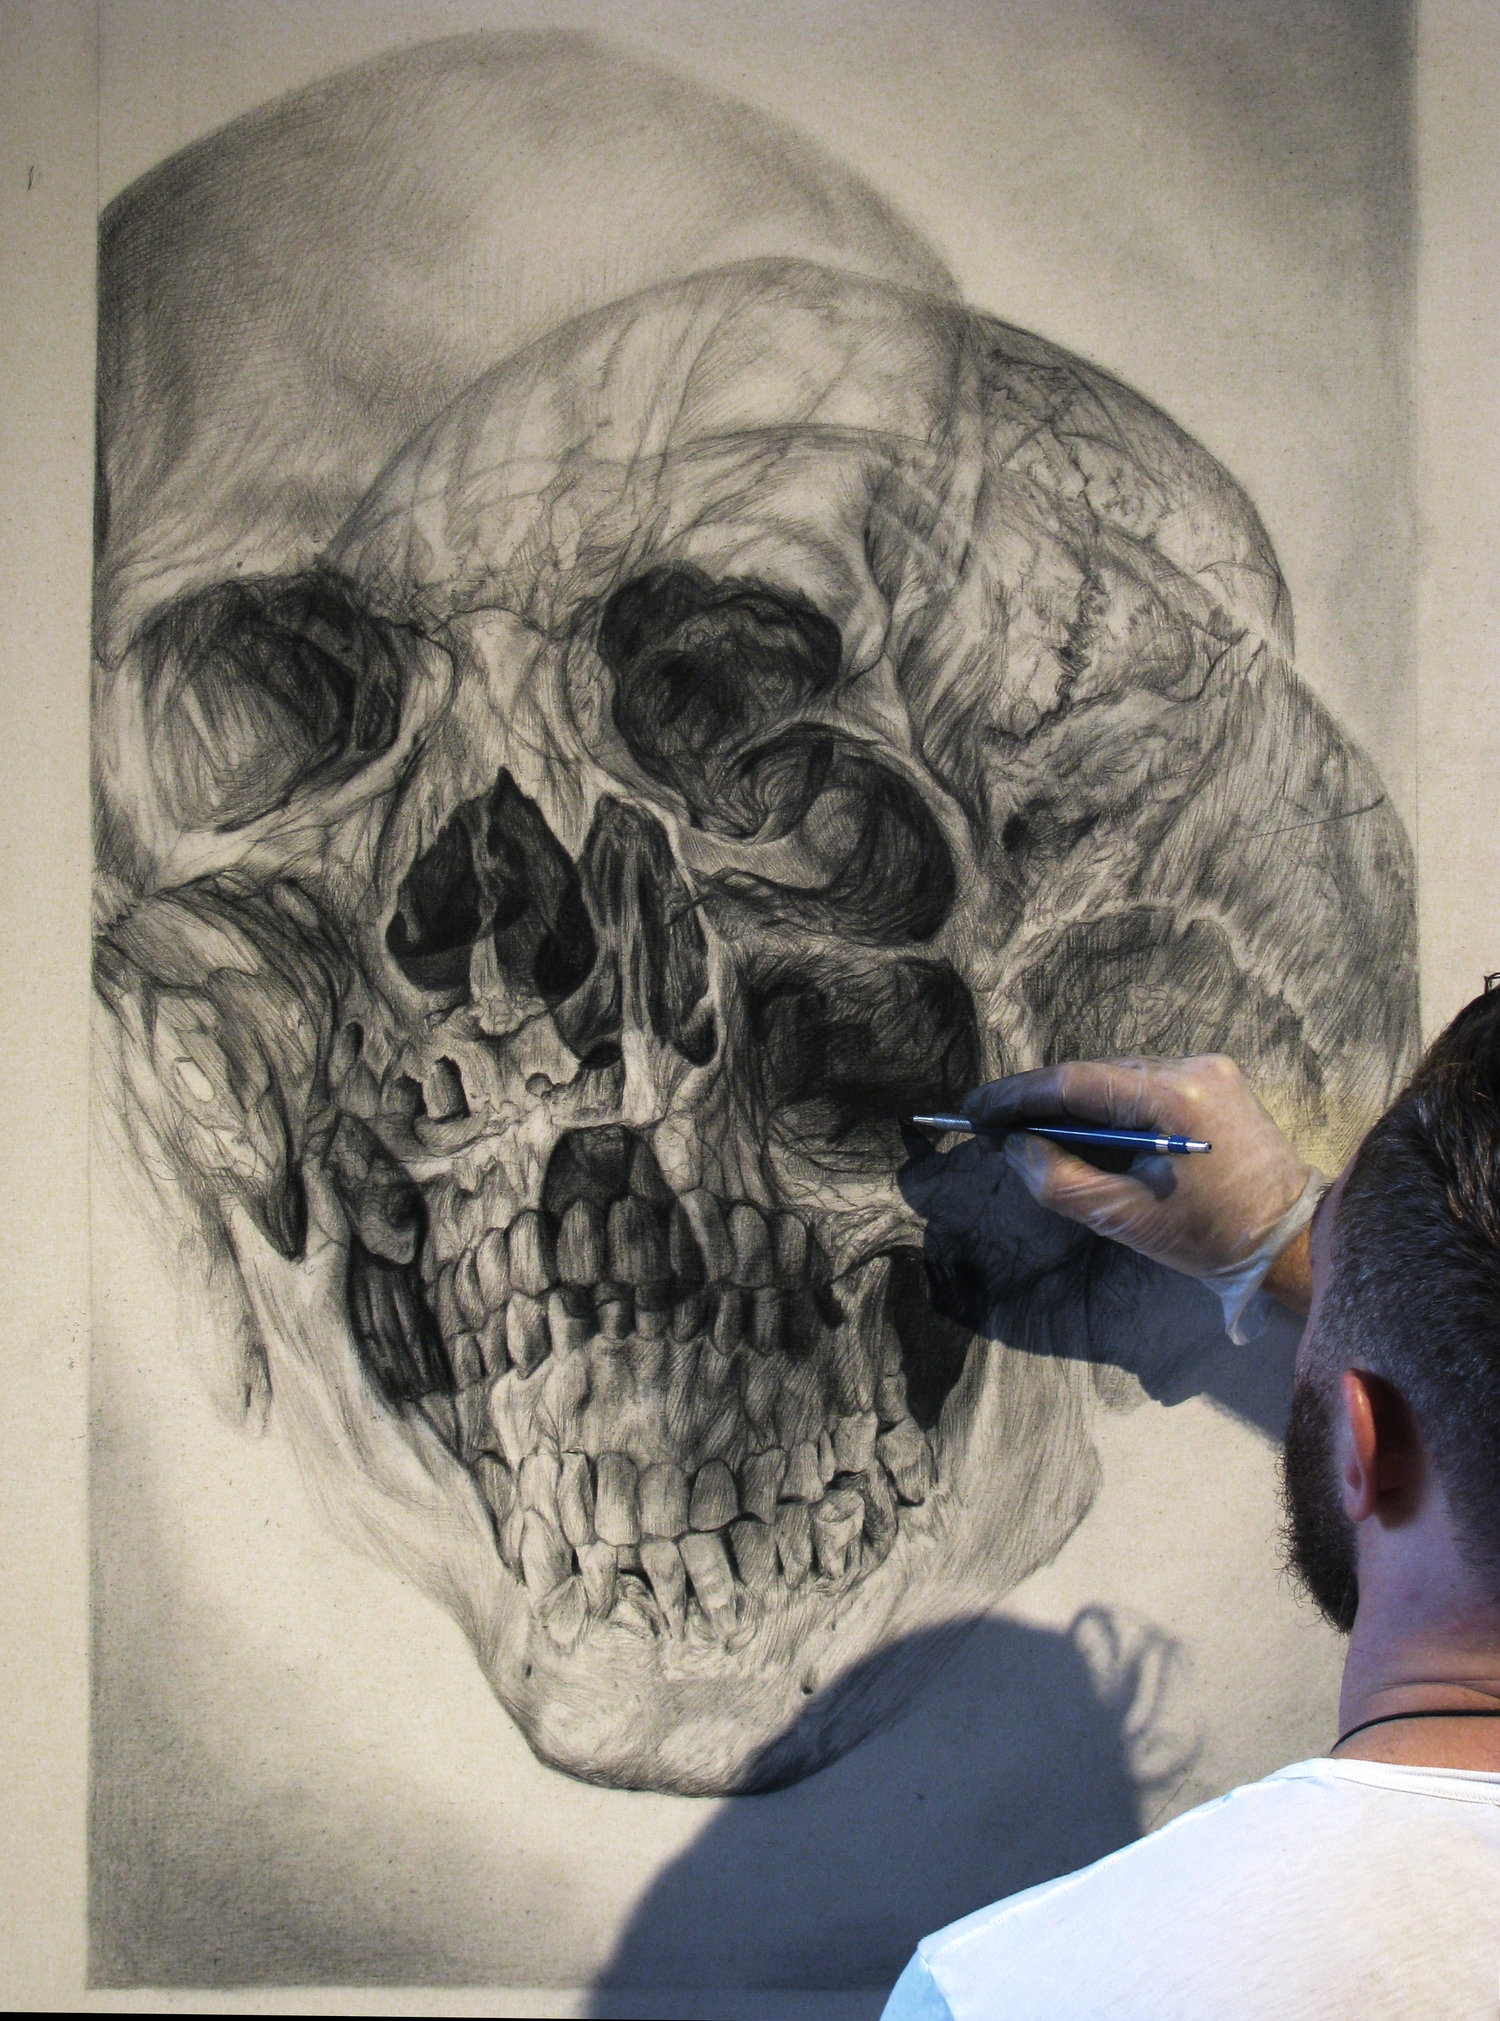 4th+Skull+detail+-+Sergio+Barrale+-+pencil+on+canvas+-+40x25in+-$2,800.jpg